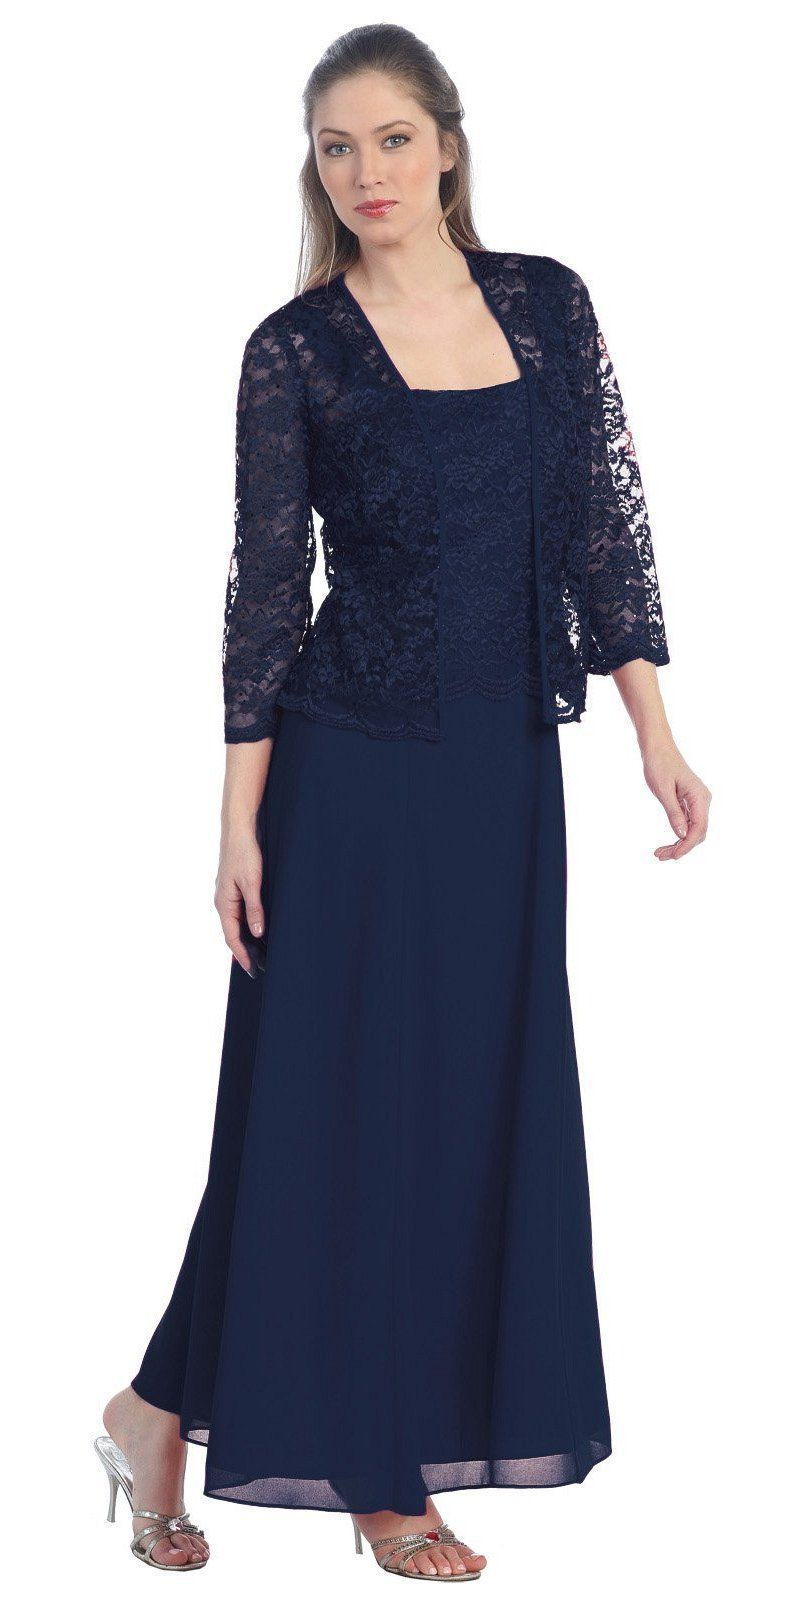 d4c9435e3cd Long Chiffon Silver Mother of Groom Dress Lace 3 4 length Sleeve ...